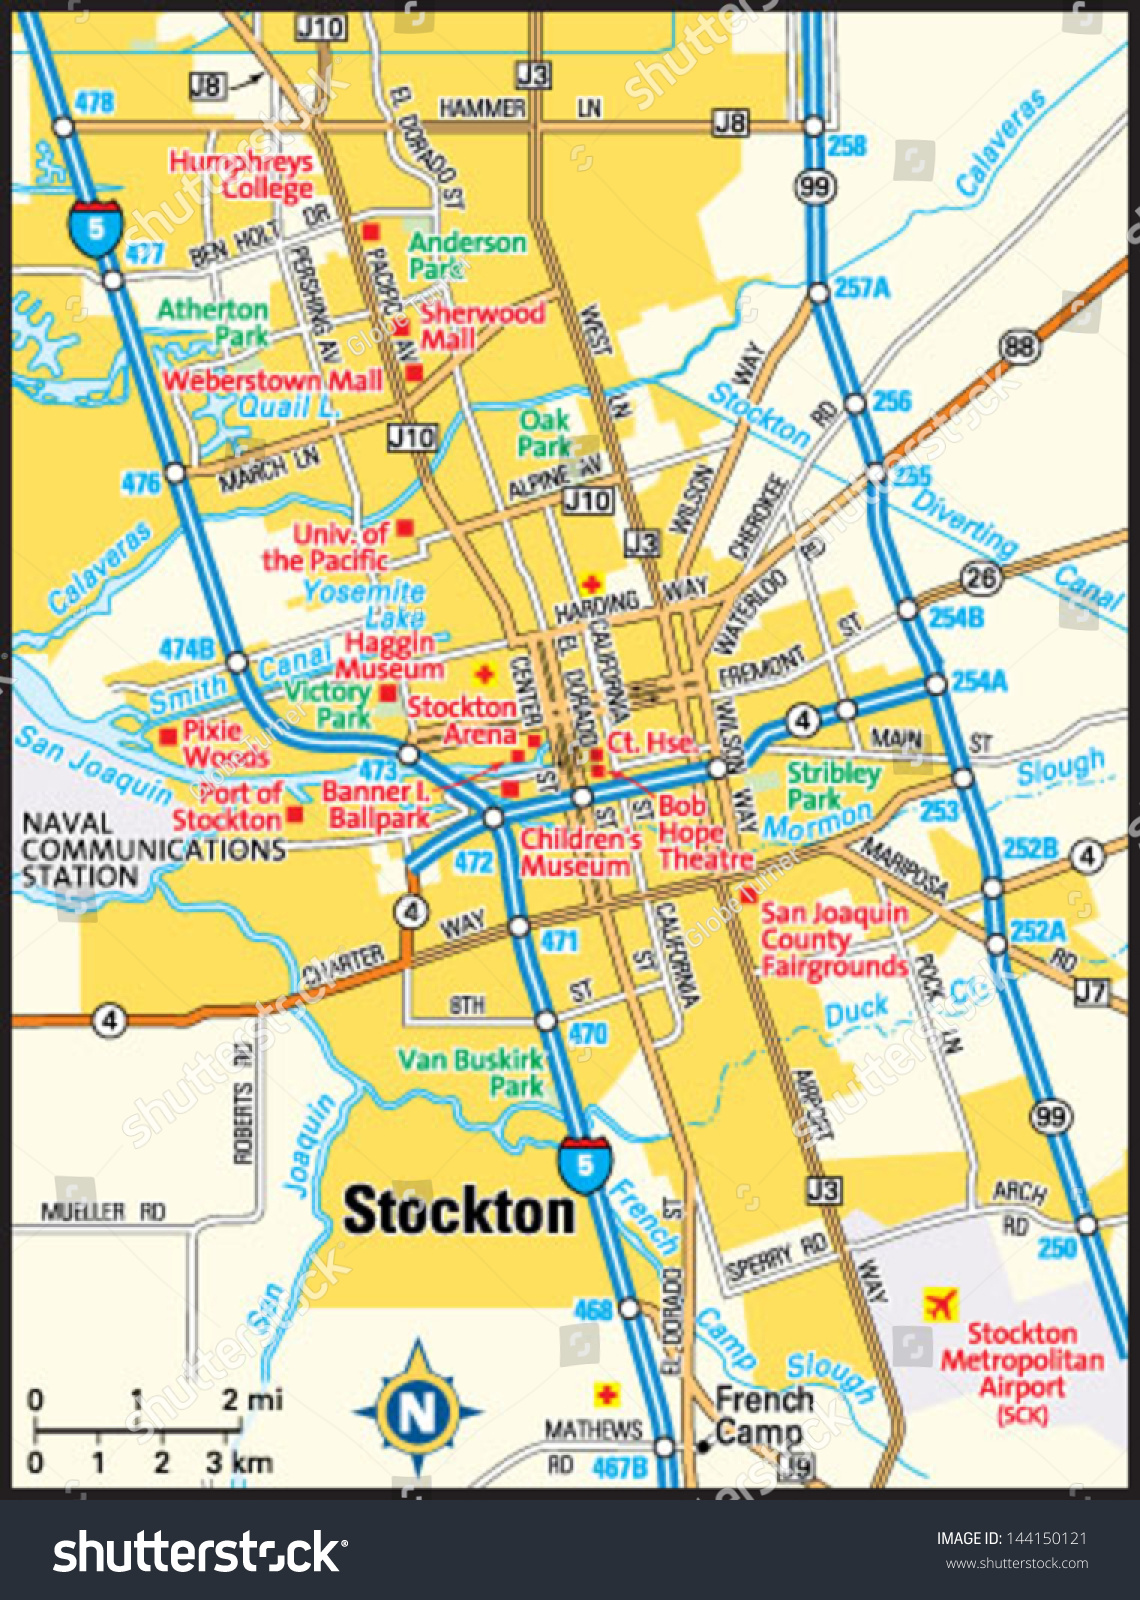 Stockton California Area Map Stock Vector (Royalty Free ... on california real map, california jail map, california inner city map, oxnard neighborhood map, california street gangs, san francisco bay area california map, caves in northern california map, san fernando valley zip code map, saticoy ca map, la street gangs map, dangerous parts of oakland map, california counties map region, richmond ca crime map, california good map, california compton map, california cute map, california crime map, map southern oregon northern california map, california homicide map, american gangs map,